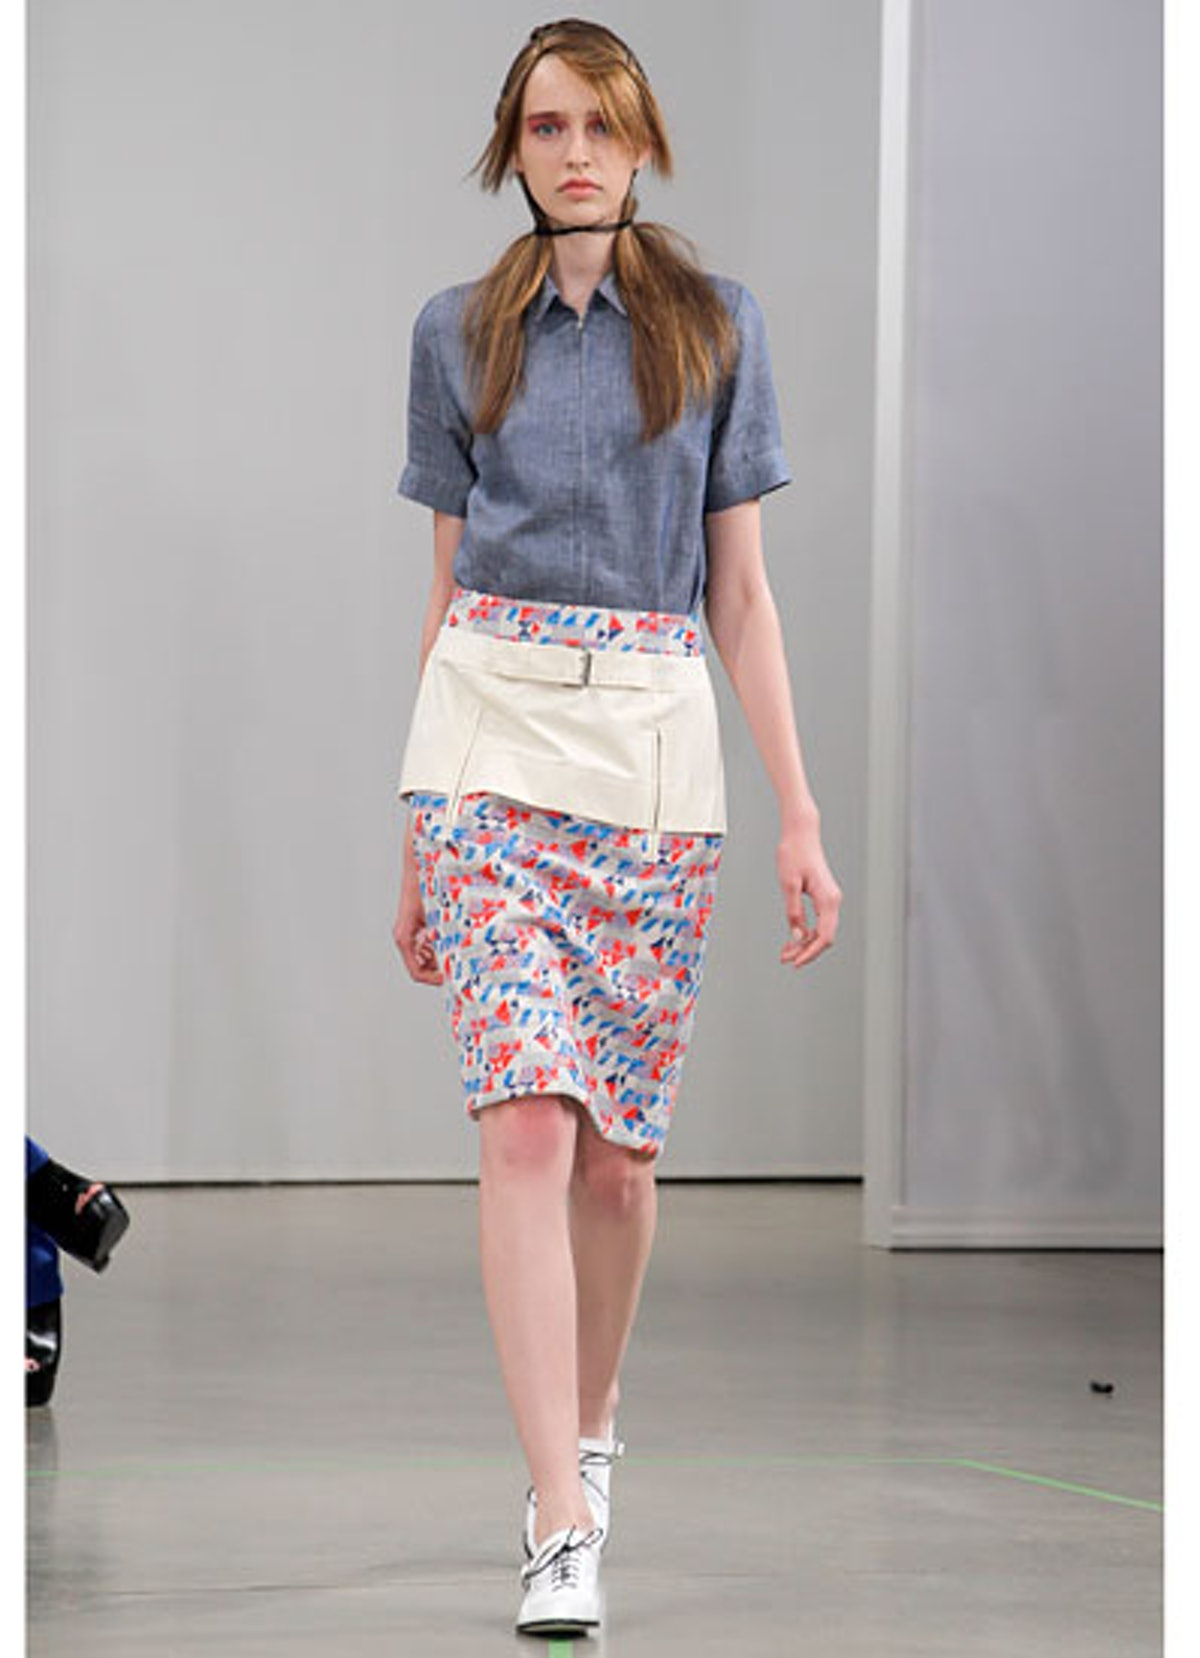 fass-creatures-of-the-wind-spring-2013-runway-04-v.jpg